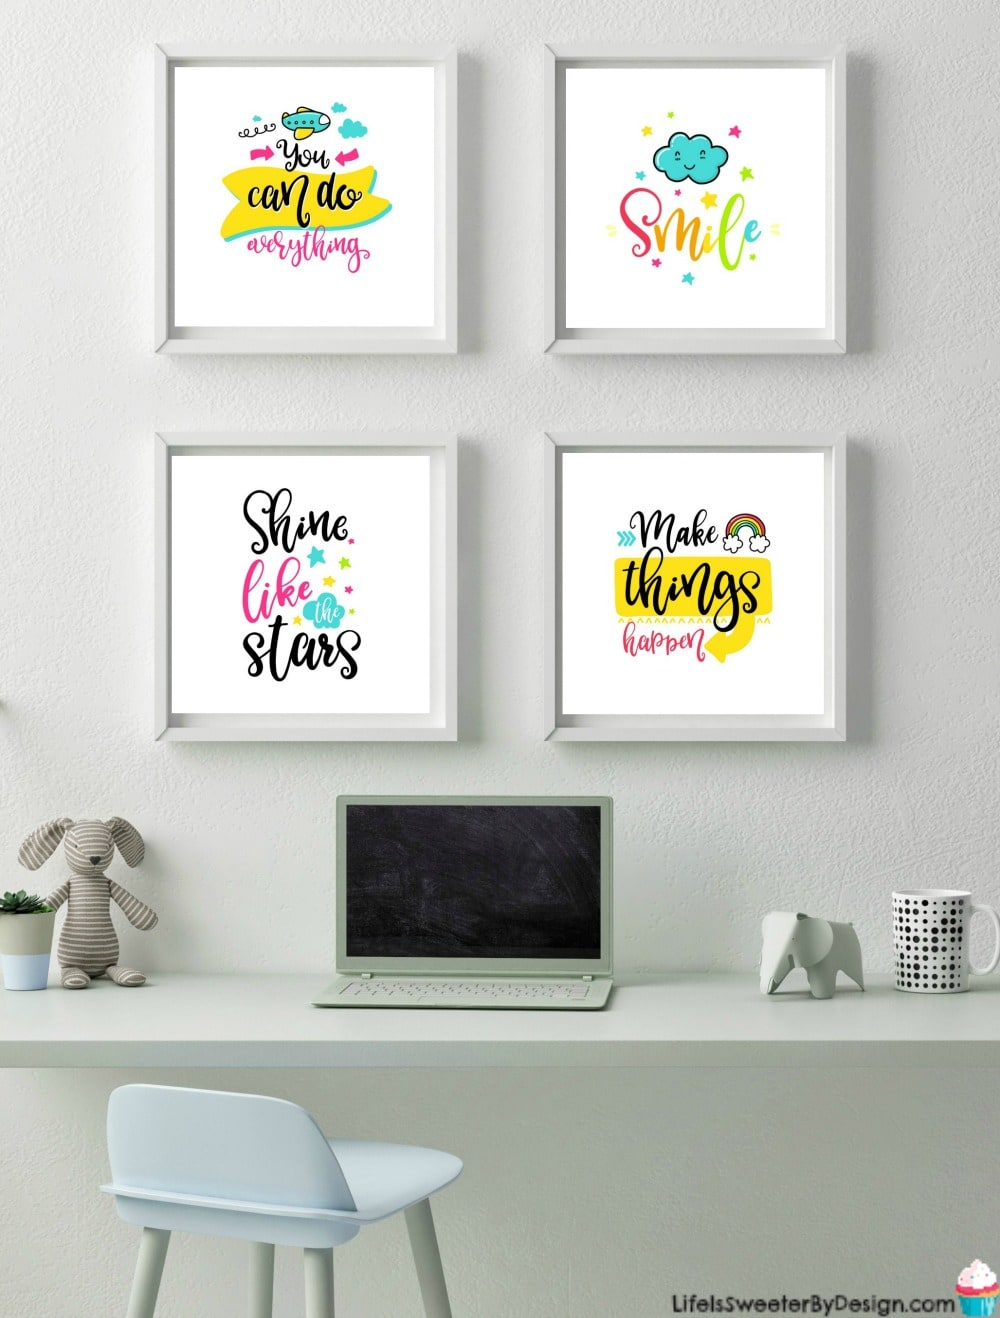 Printable Wall Art for a Little Girl's Room - Life is